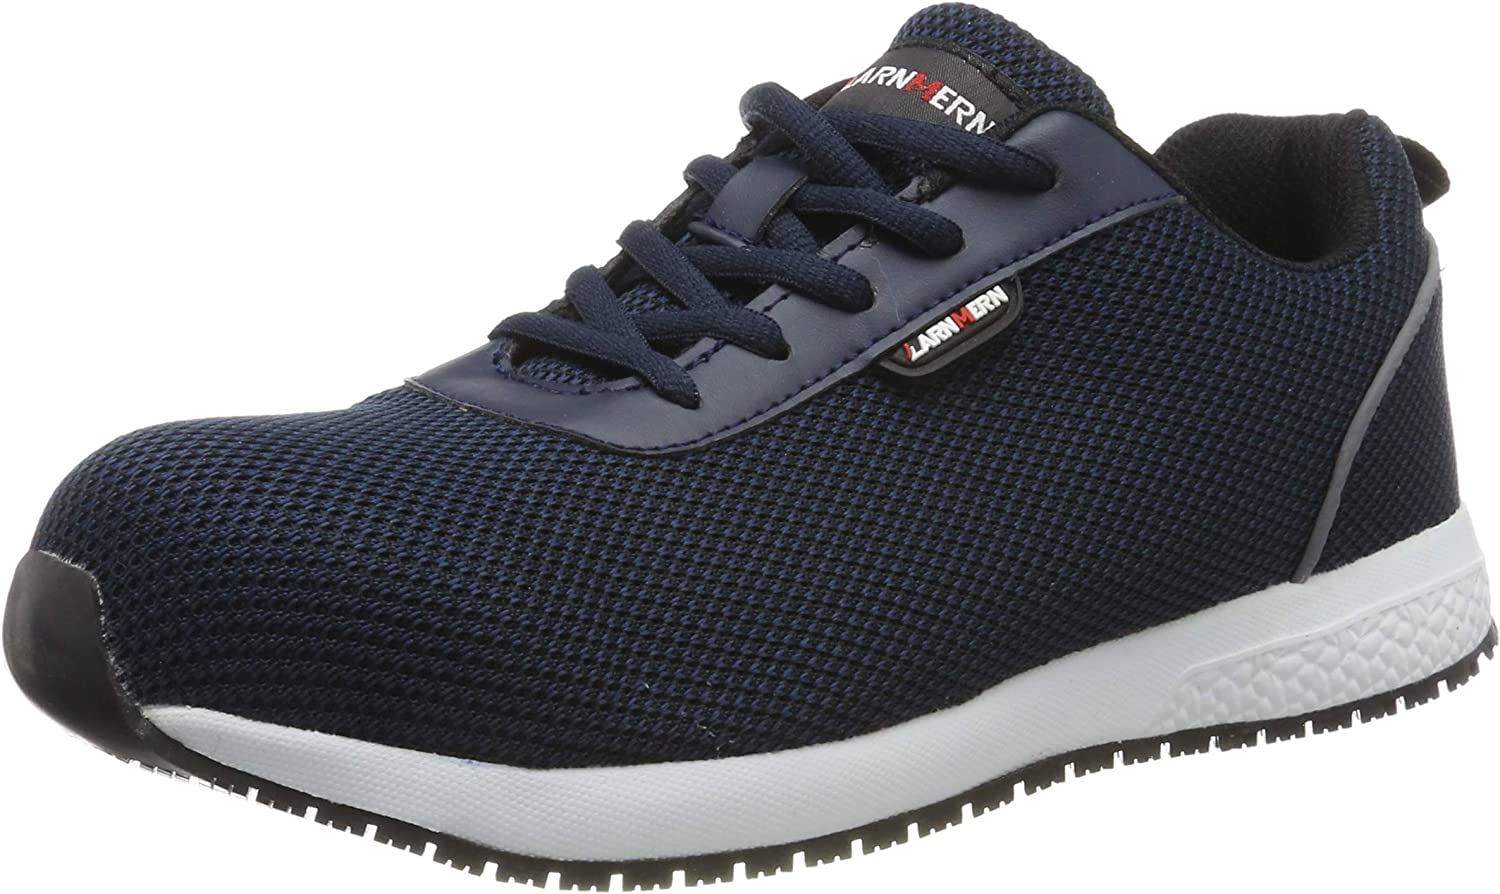 LARNMERN Mens Steel Toe Safety Trainers,LM-313 S1 SRC EH Flyknit Breathable Lightweight Reflective Work shoes with Arch Support(EH bluee, 9.5 UK)